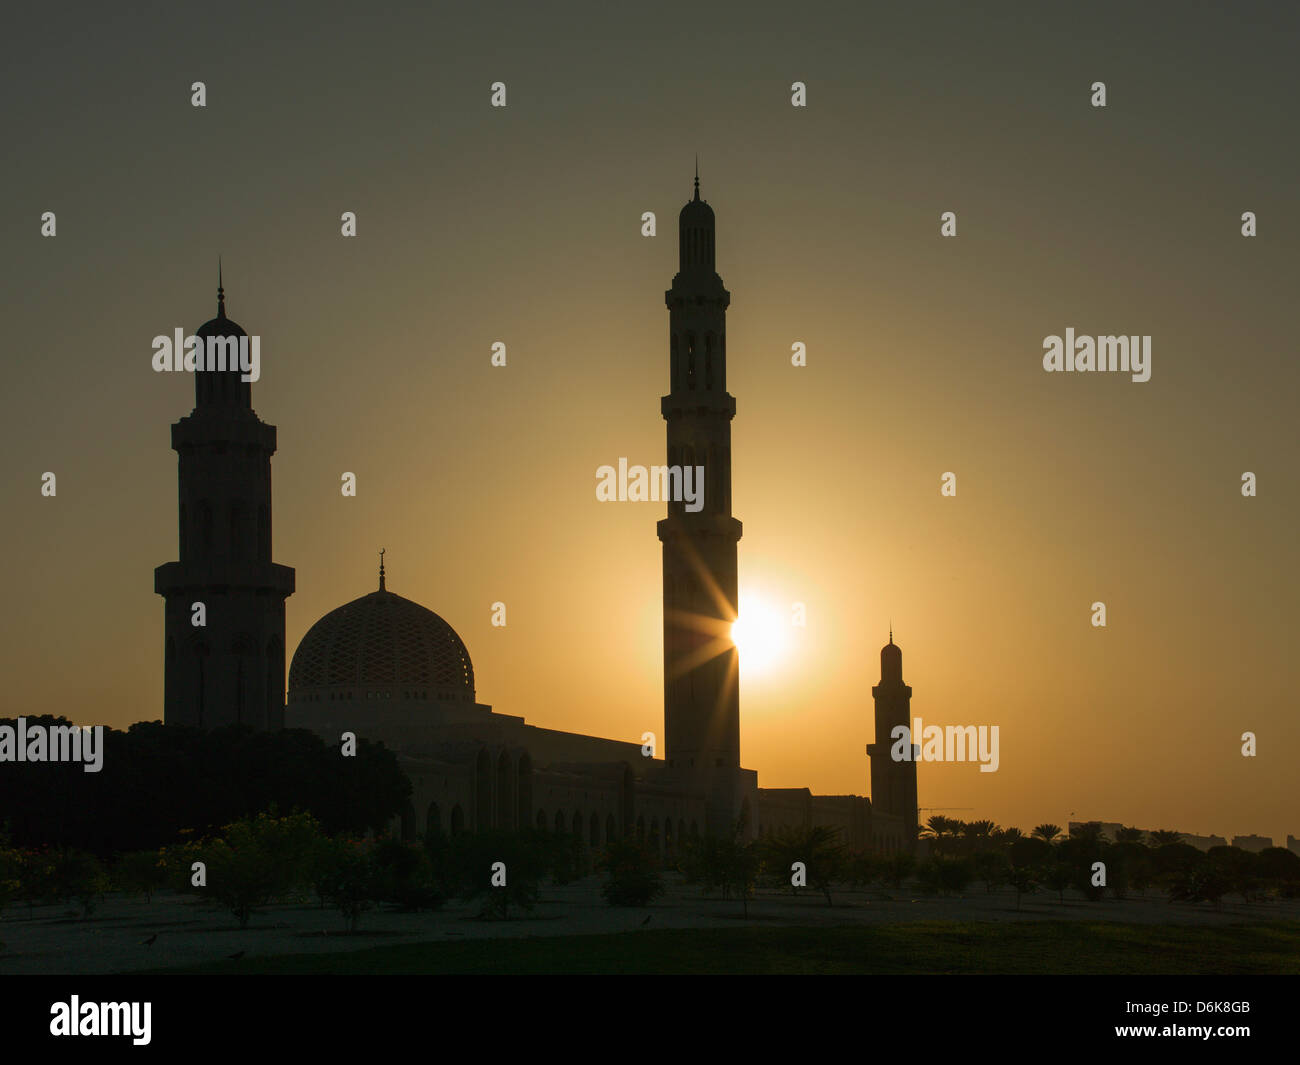 Sultan Quaboos Great Mosque, Muscat, Oman, Middle East - Stock Image